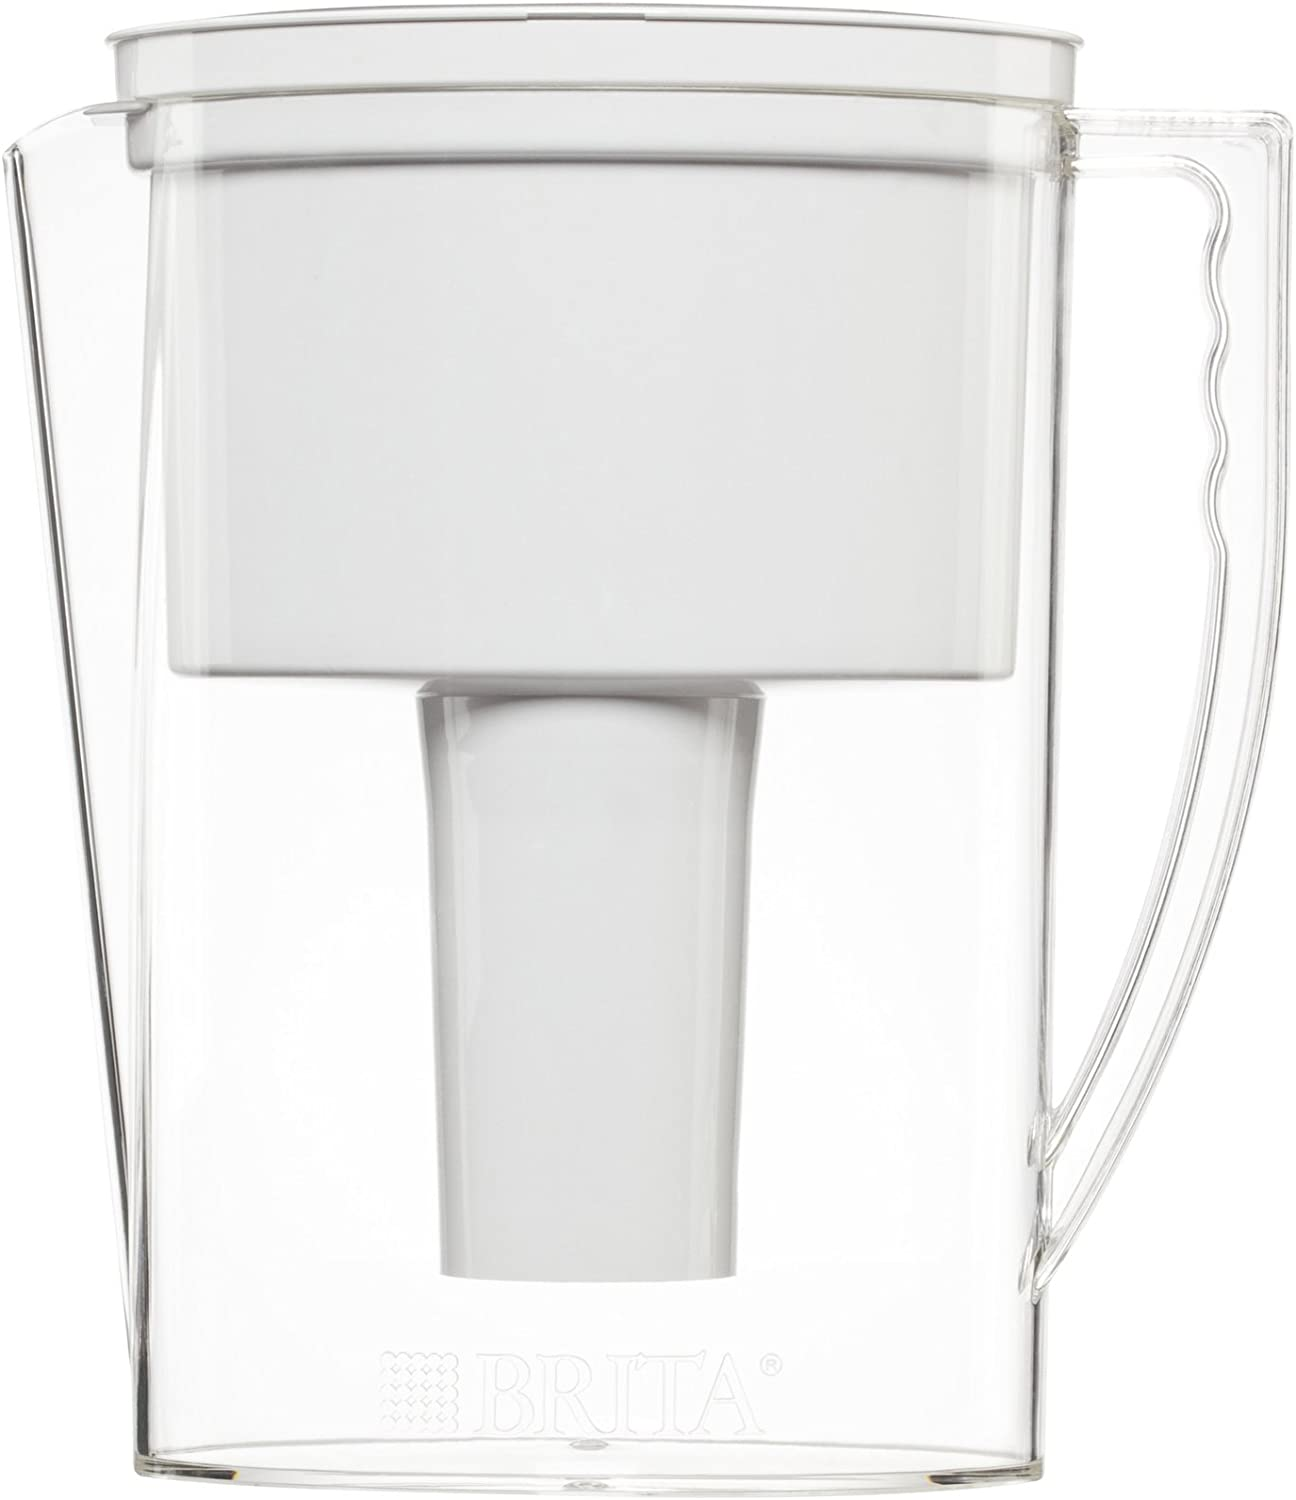 Brita Slim Water Filter Pitcher With 1 Standard Filter White 5 Cup Packaging May Vary Amazon Ca Home Kitchen